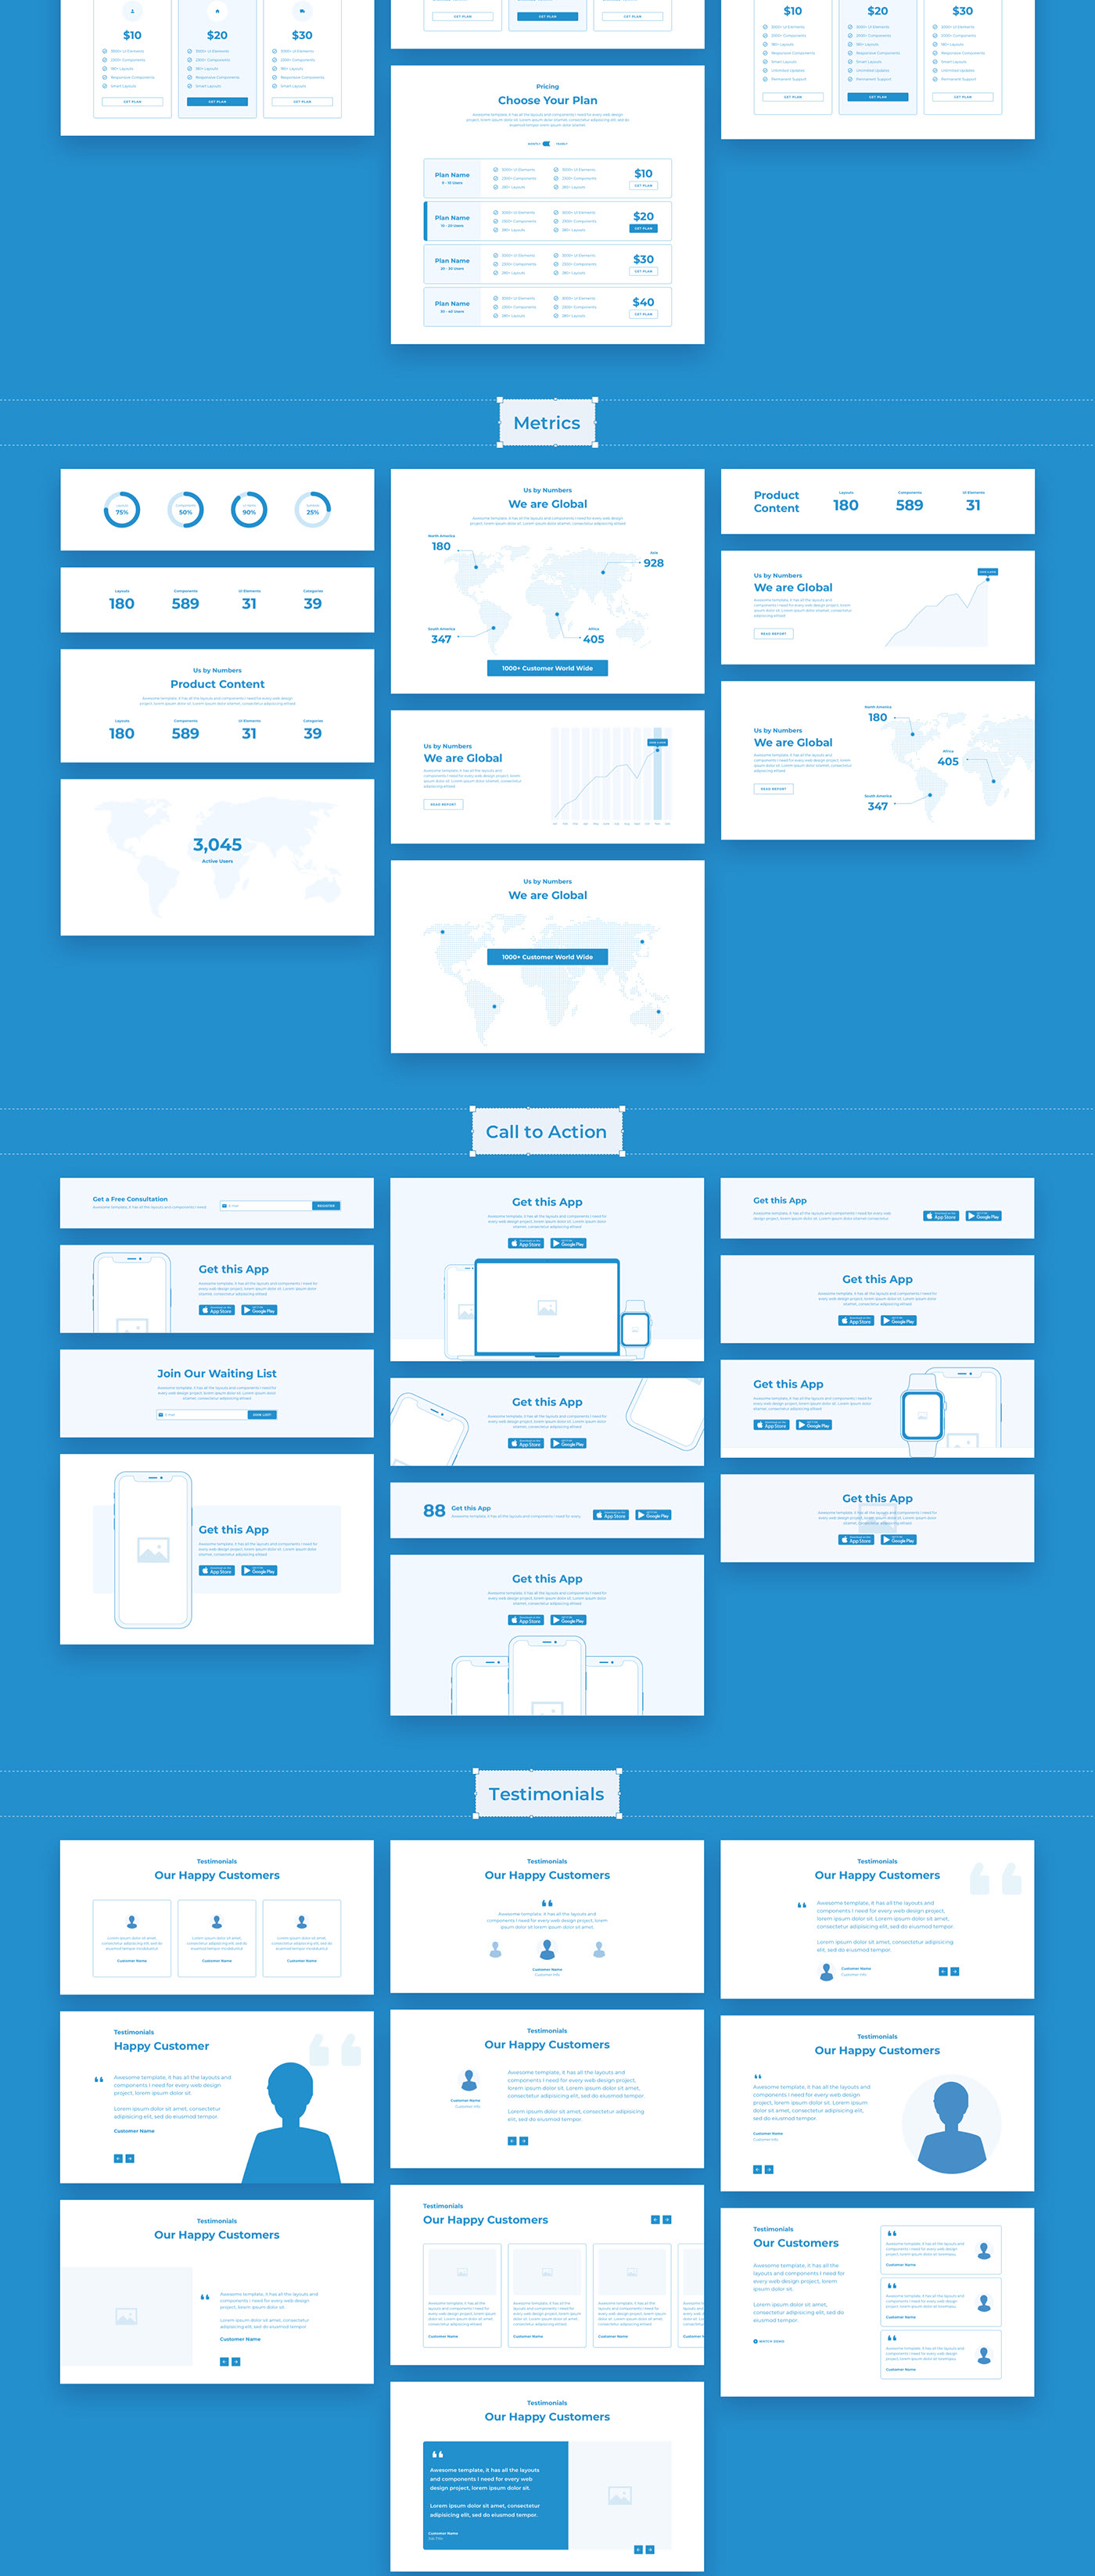 4d556d57728315.5f82276d3c251 - Wireland - Wireframe Library for Web Design Projects - Sketch Template